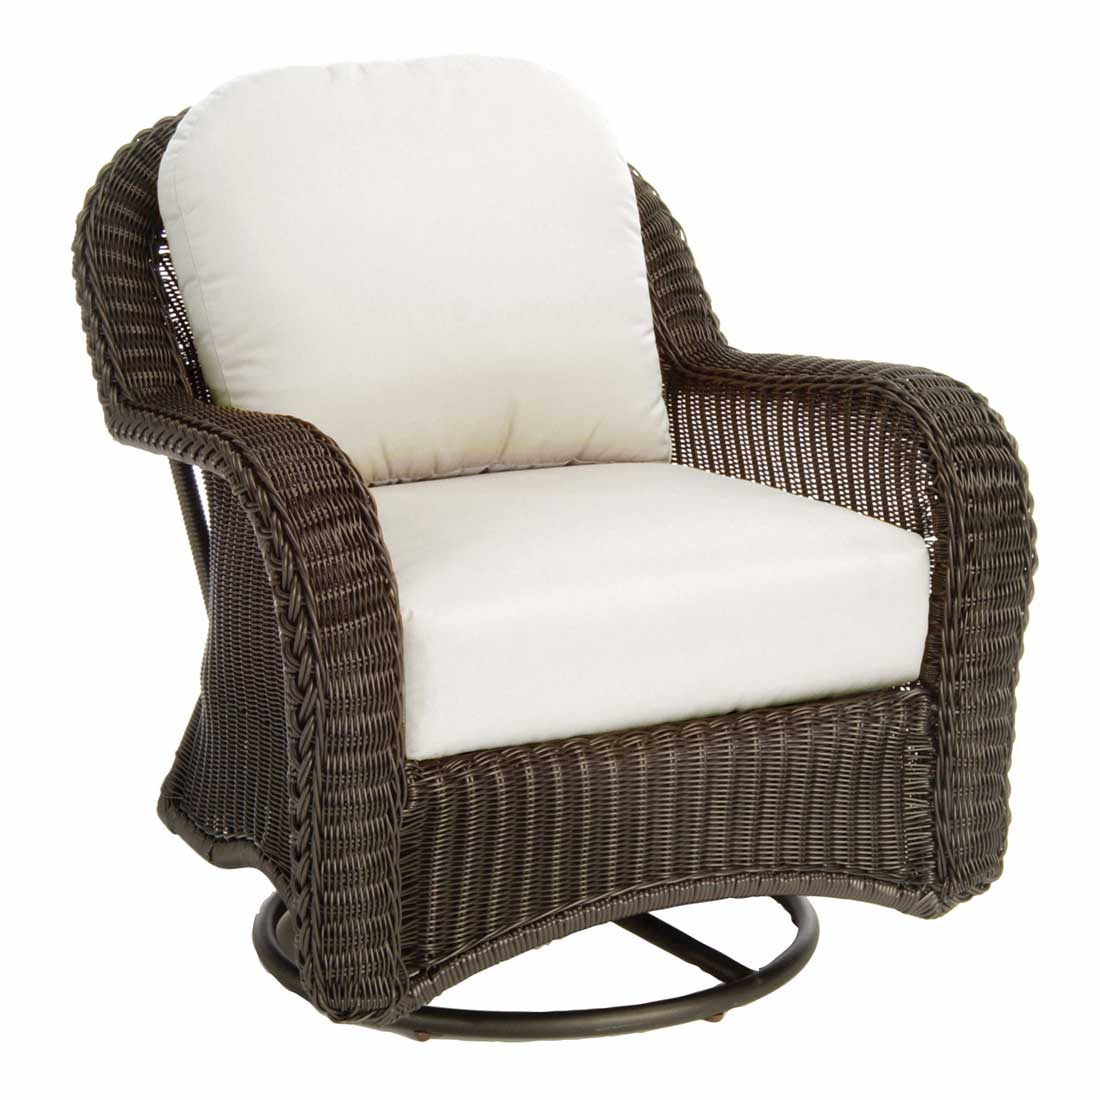 Genial Classic Wicker Swivel Glider